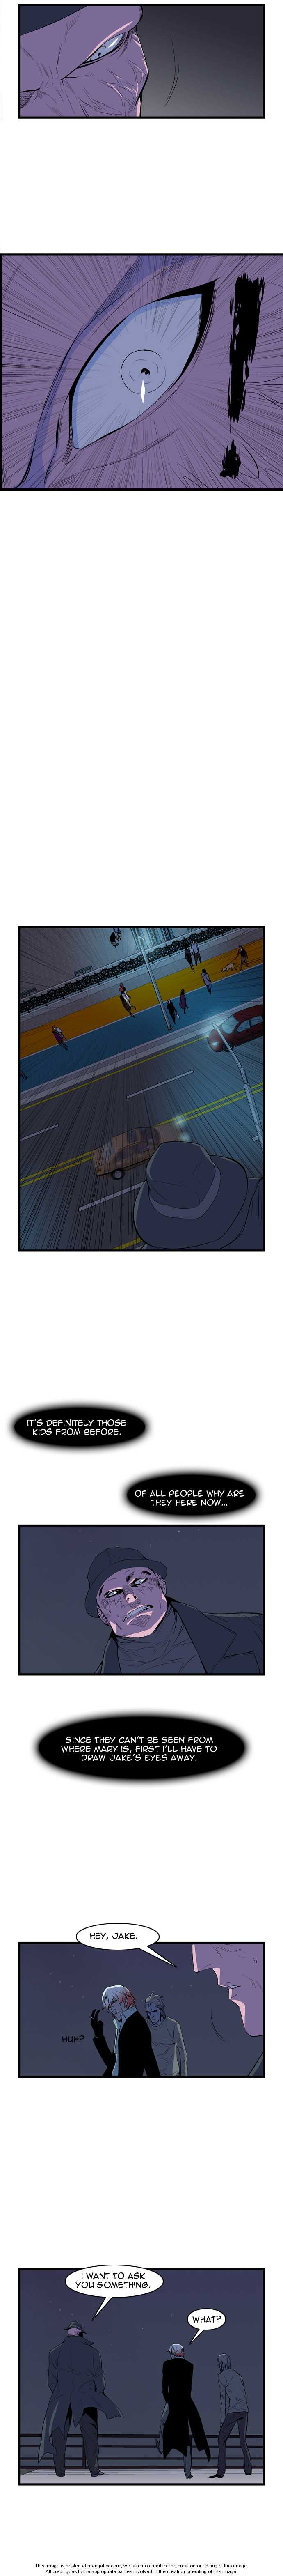 Noblesse 65 Page 3